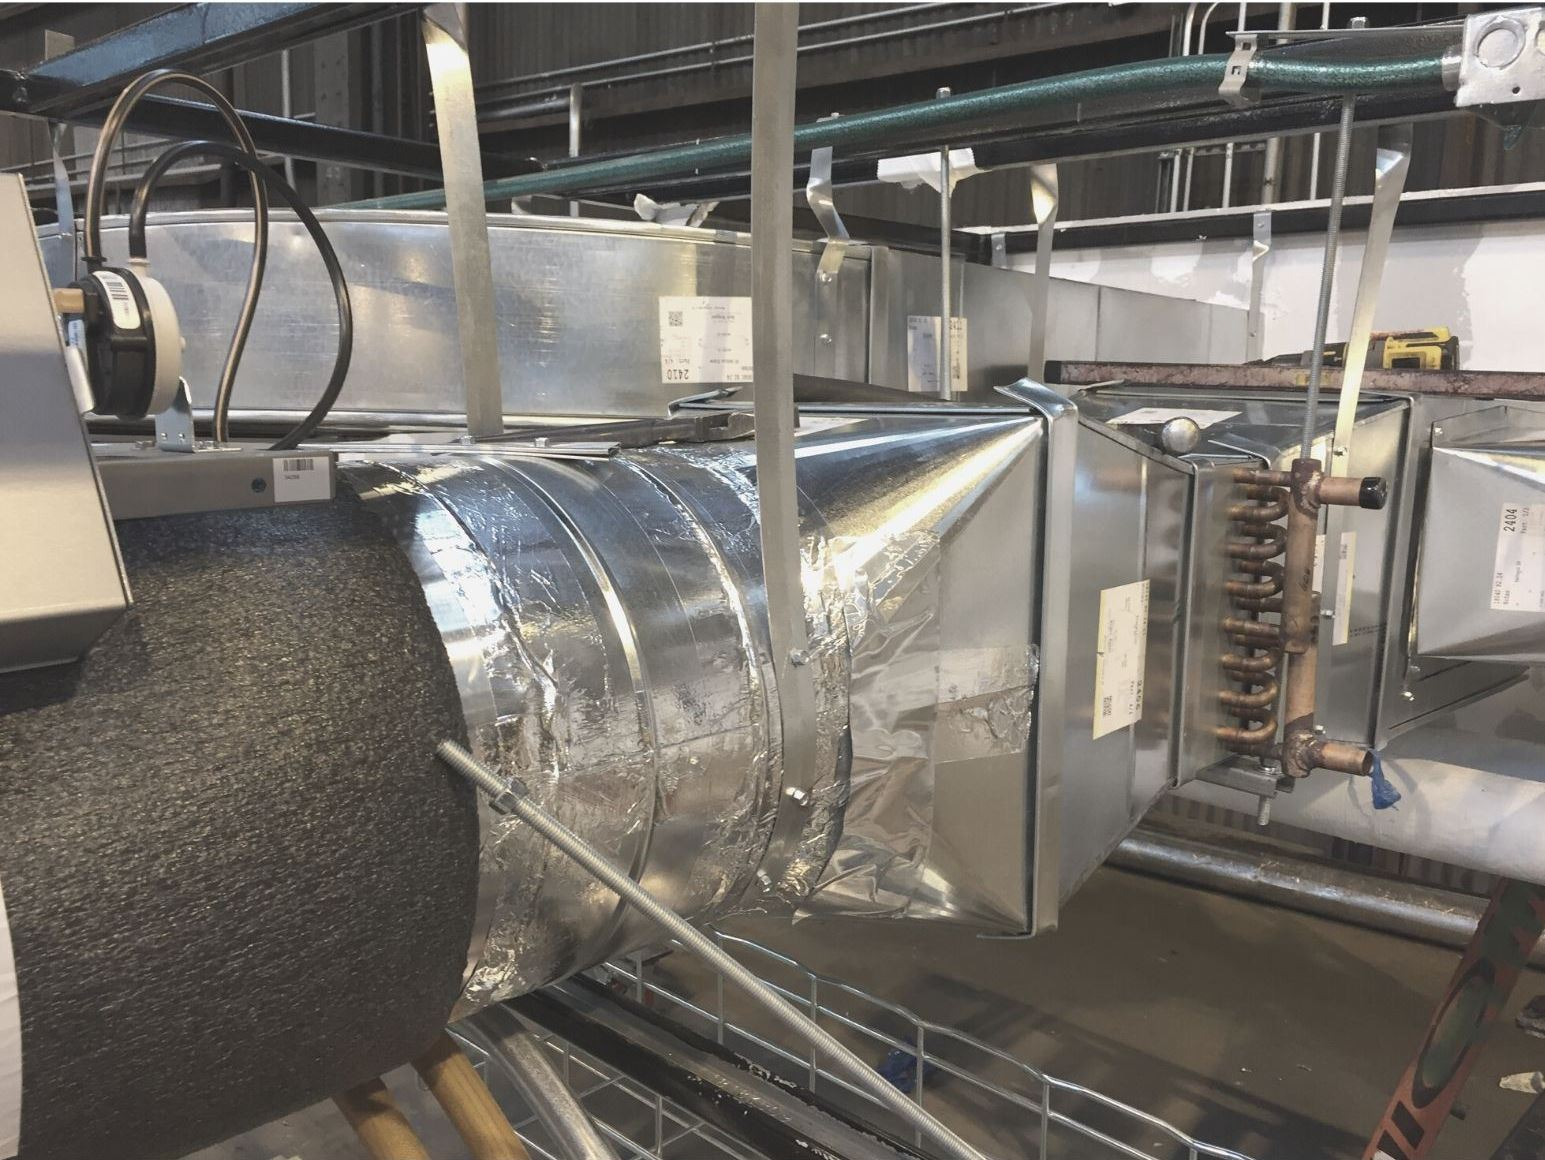 Ductwork in an HVAC ventilation system